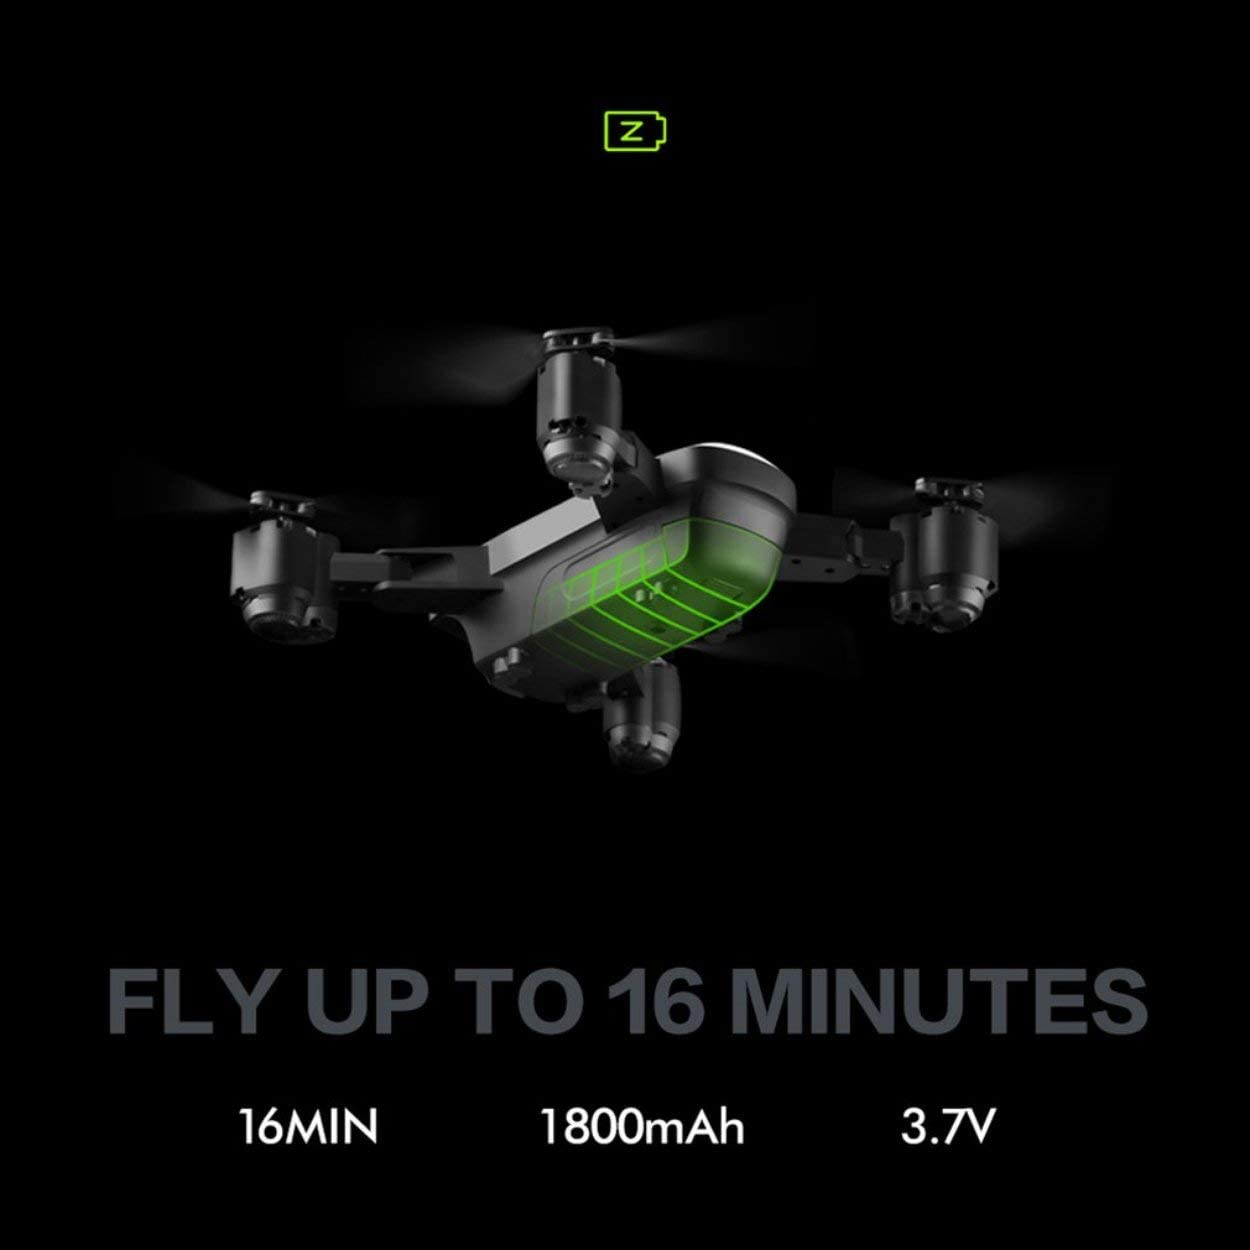 FPV RC Drones with 720HP Camera 2.4GHz WiFi 4CH 6-Axis Gyro Quadcopter 120 Degree Wide Angle and 360 Degree Flips Headless One Key Return Folding RC Helicopter Portable RC Model.